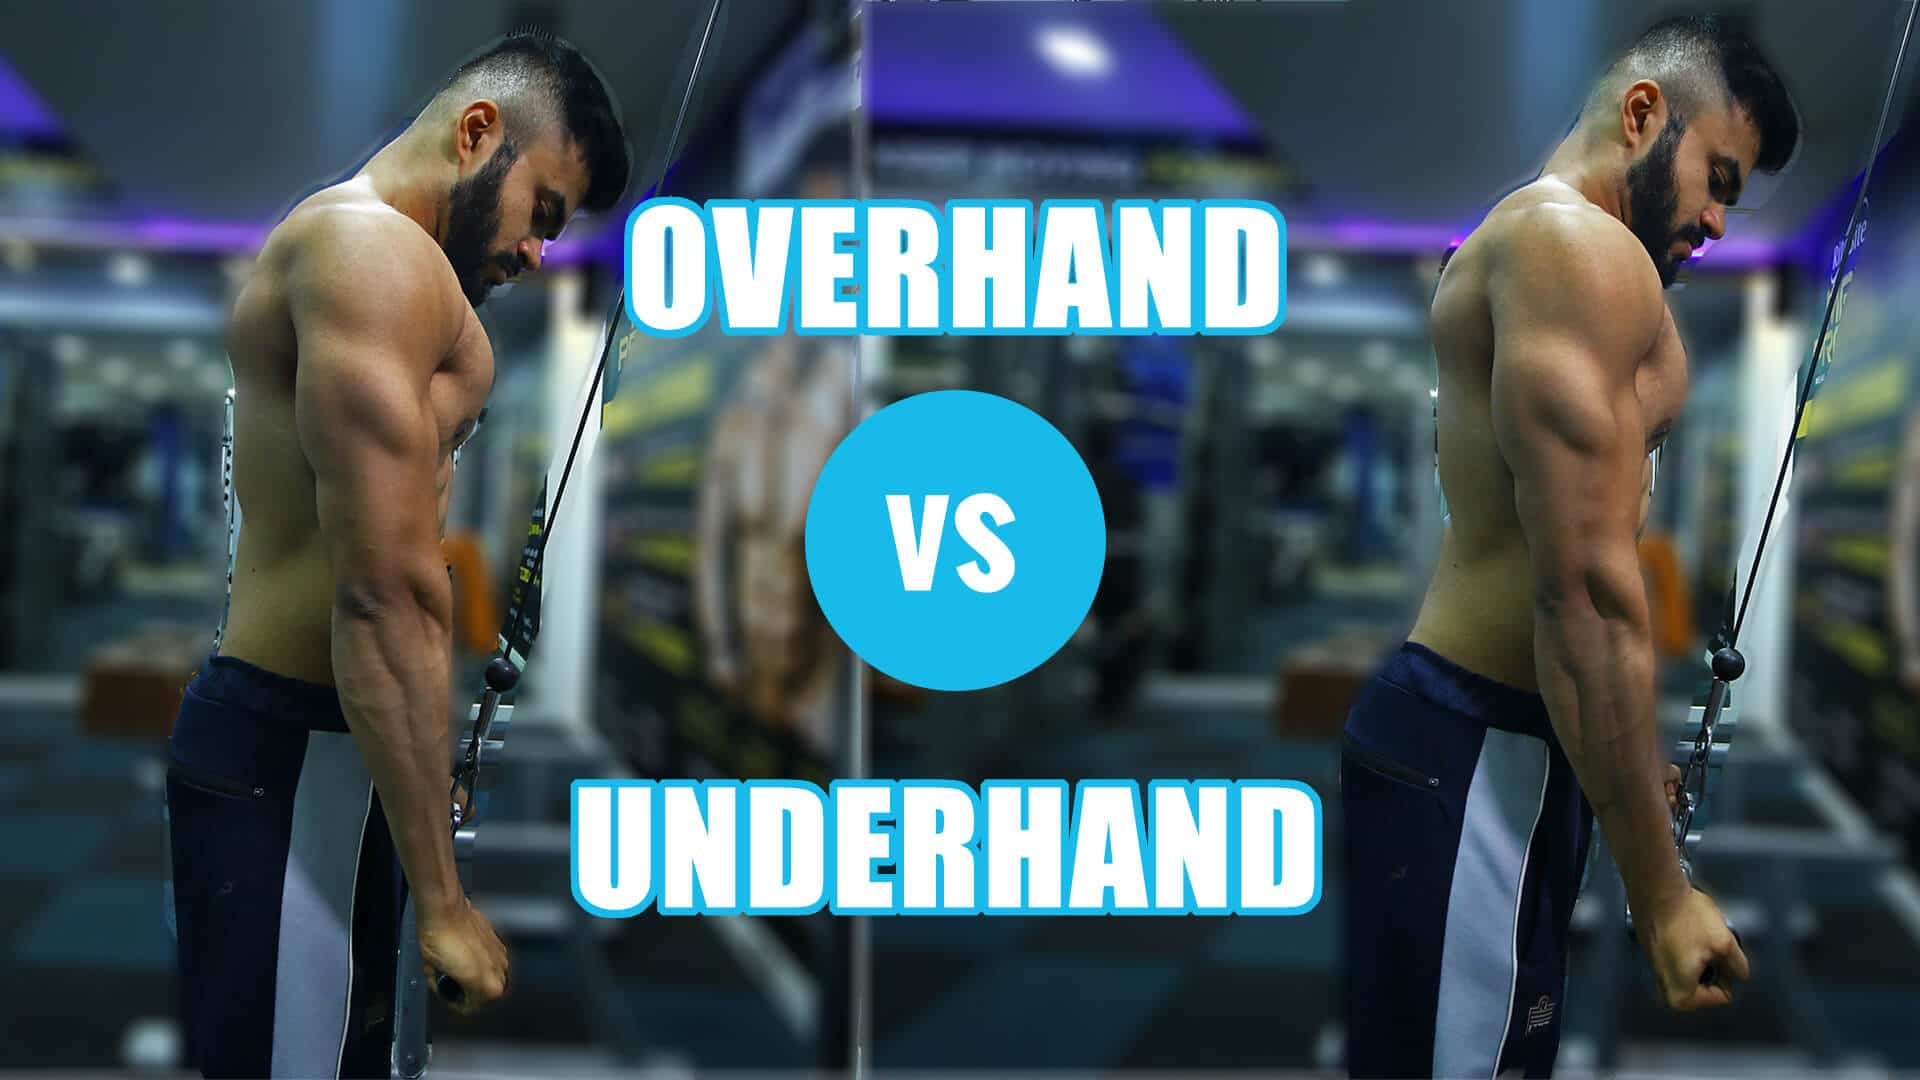 OVERHAND vs UNDERHAND Tricep Extensions | What's better?